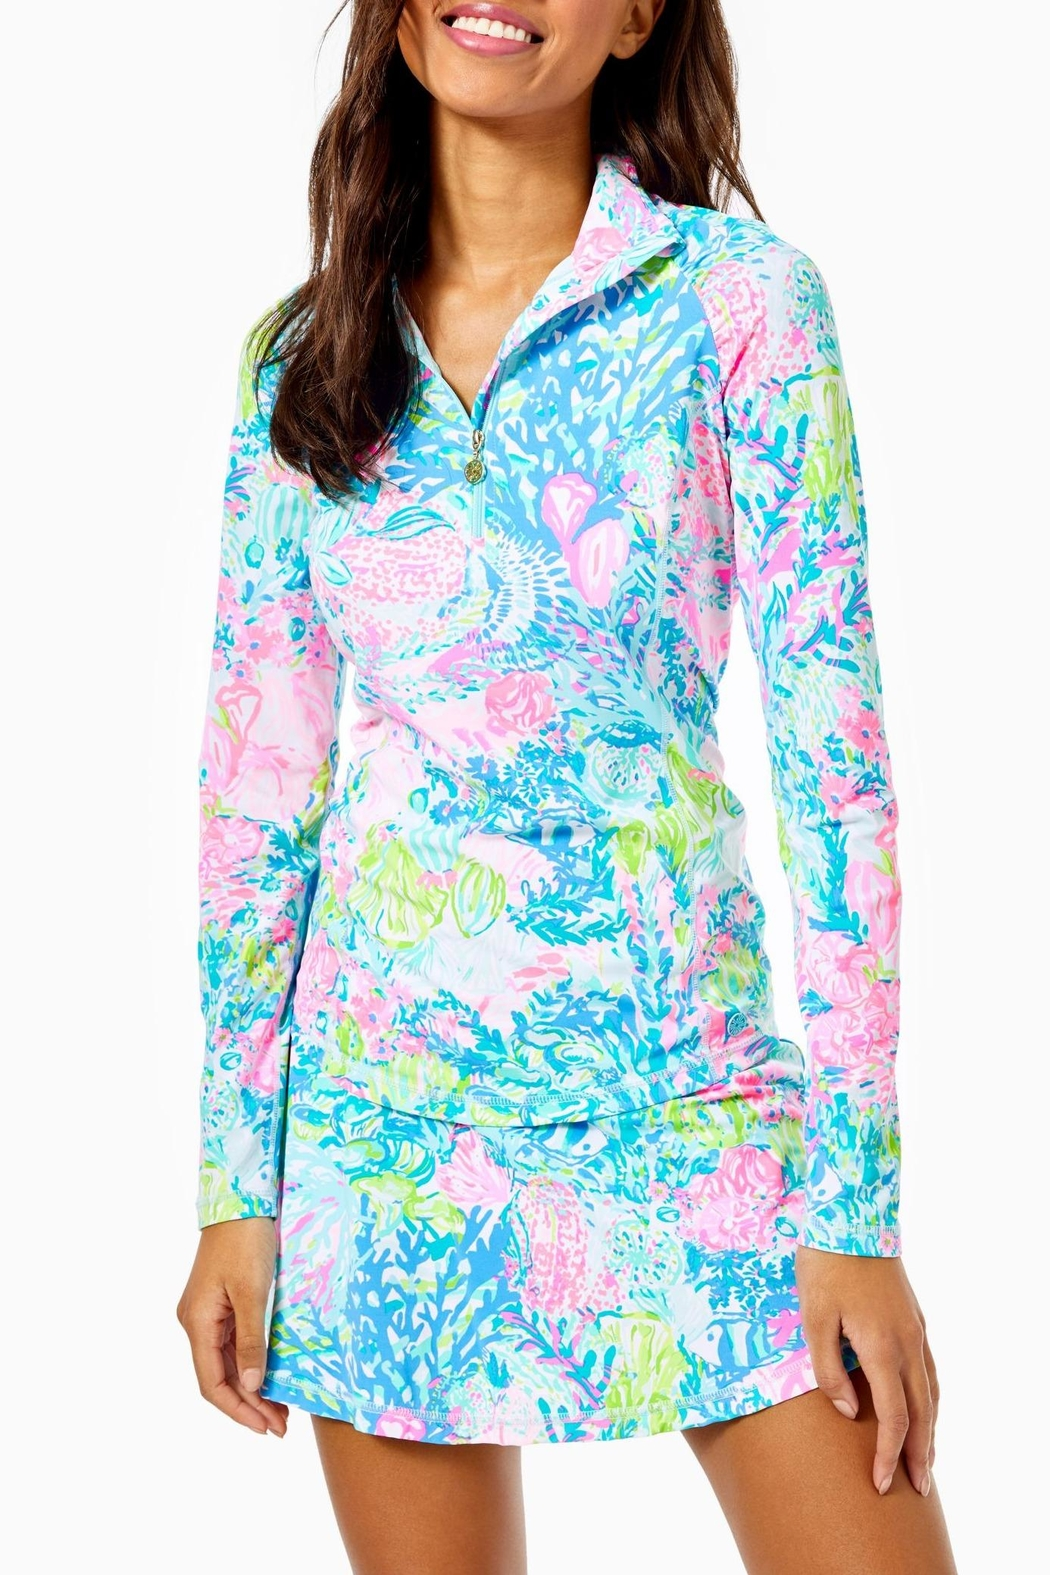 Lilly Pulitzer Luxletic Justine Pullover - Main Image